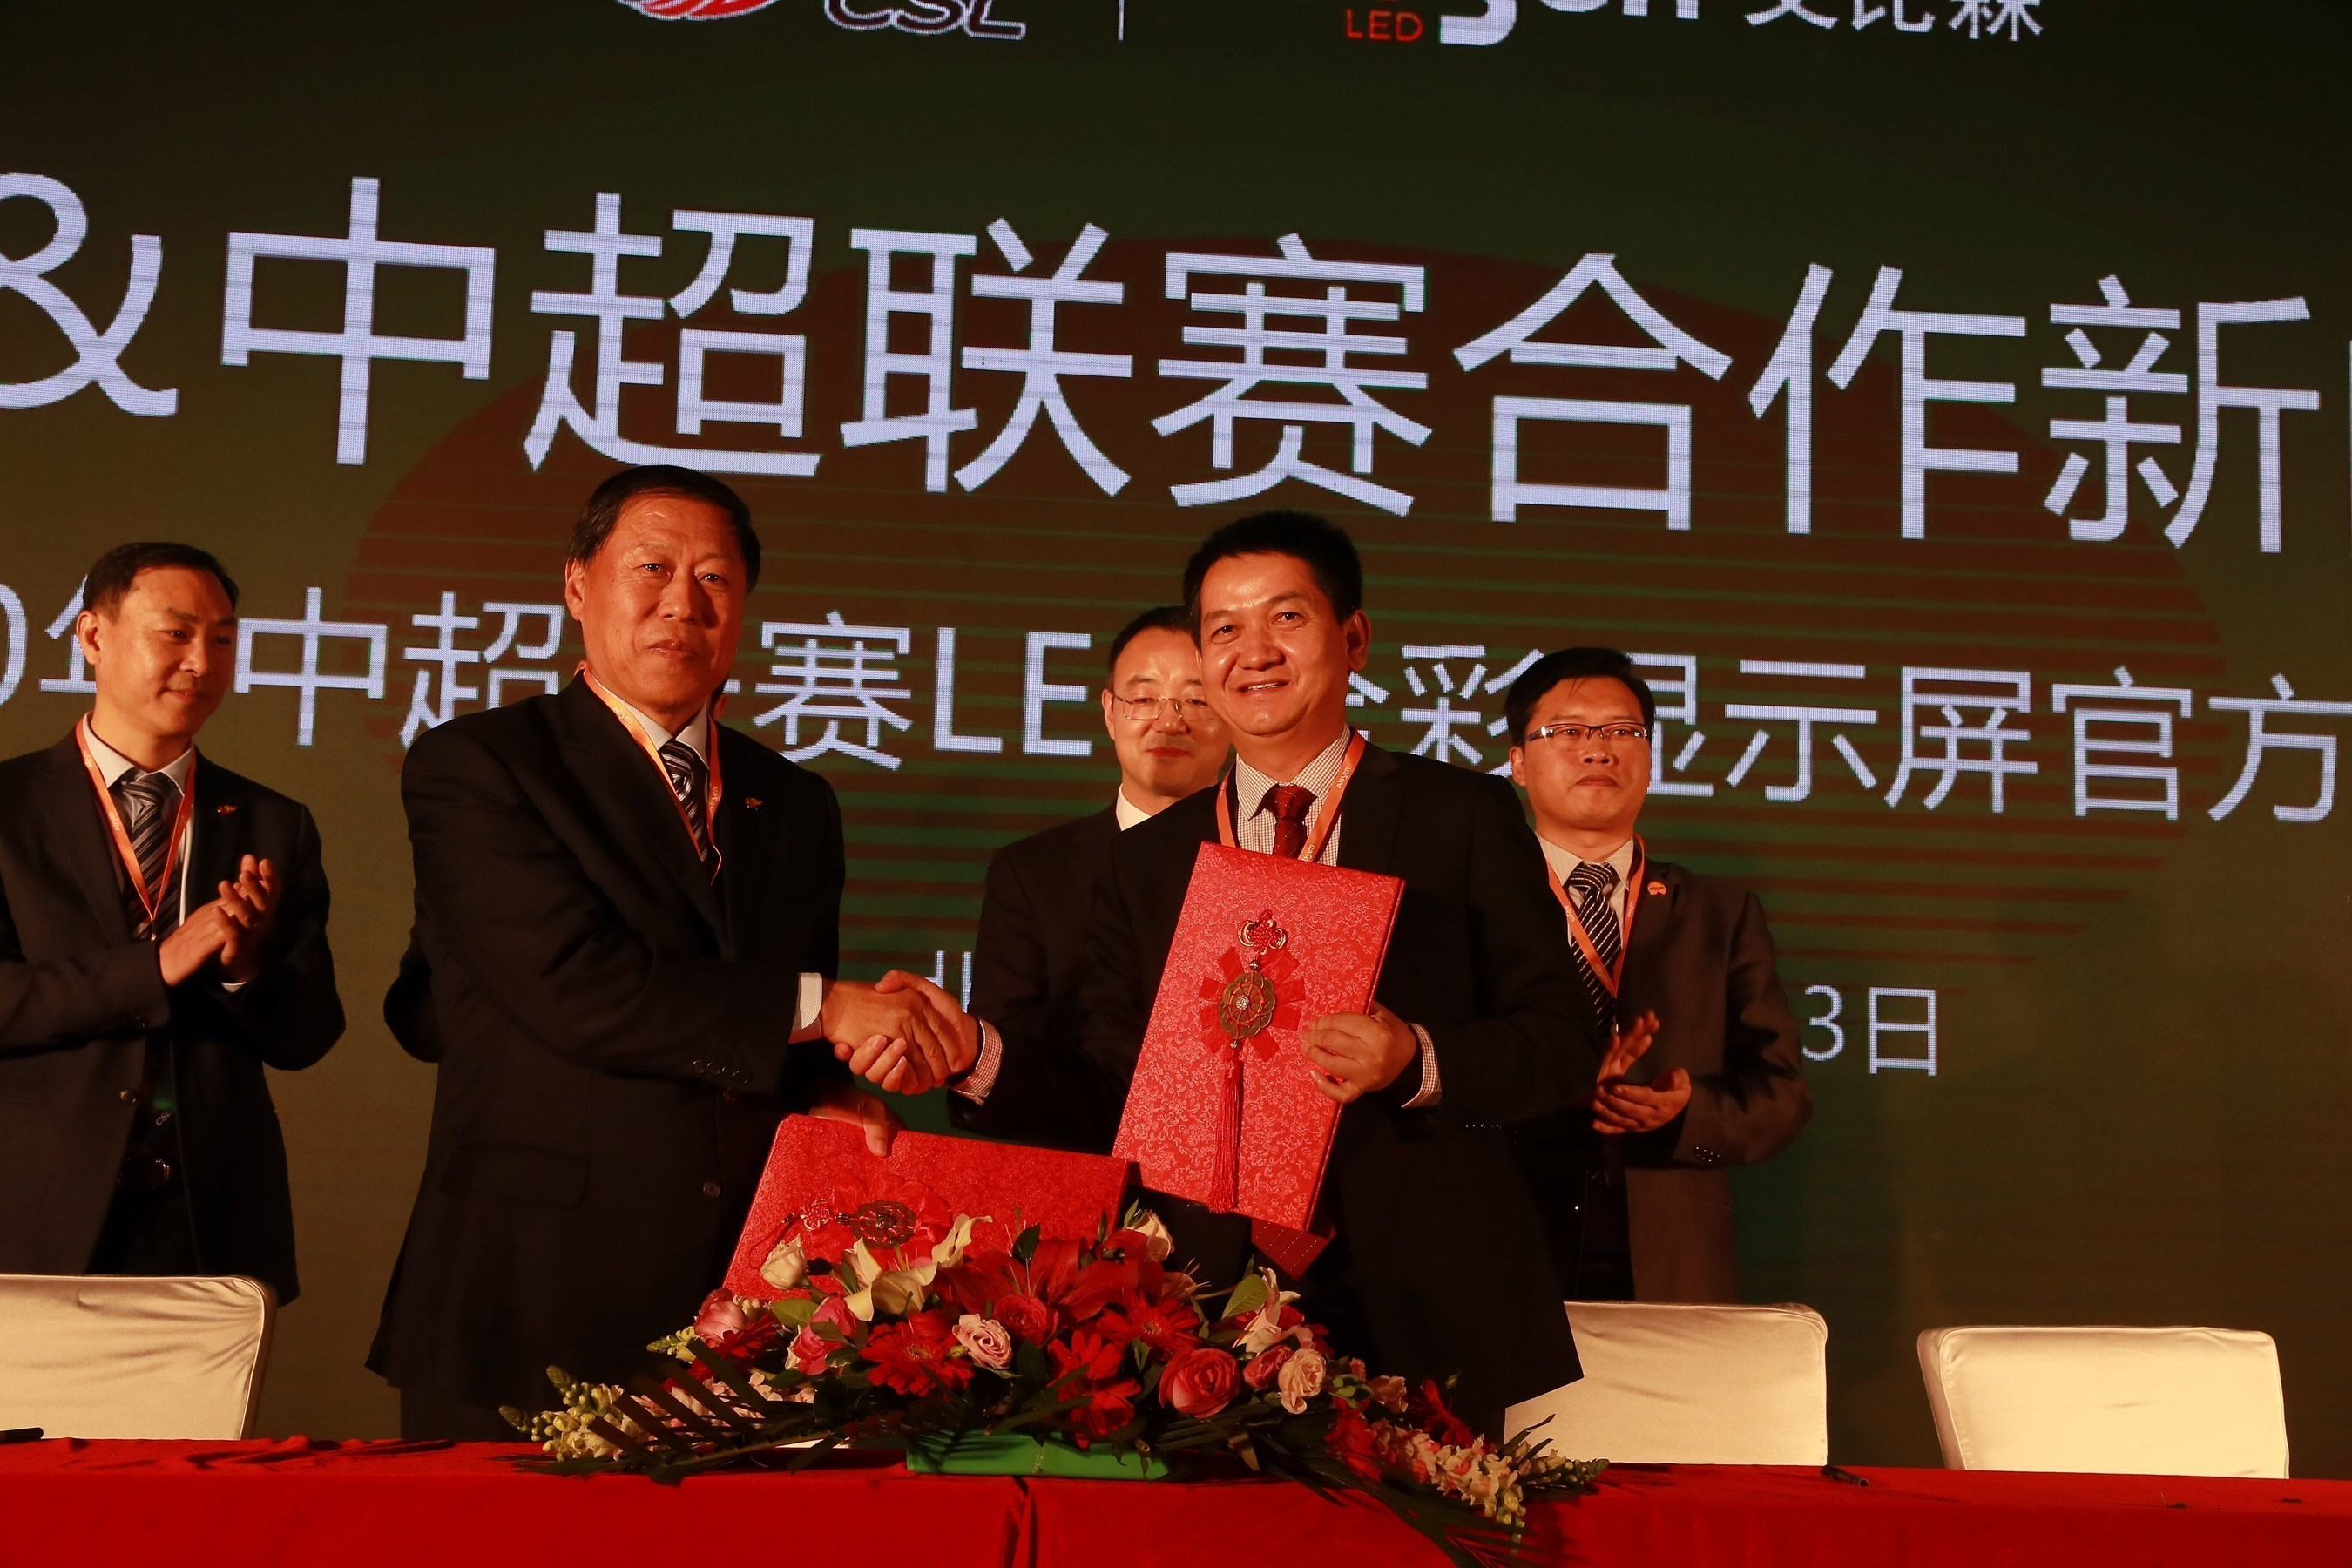 Absen Joins Hands with Chinese Super League  to Further Expand Footprint in the Global Sports Industry